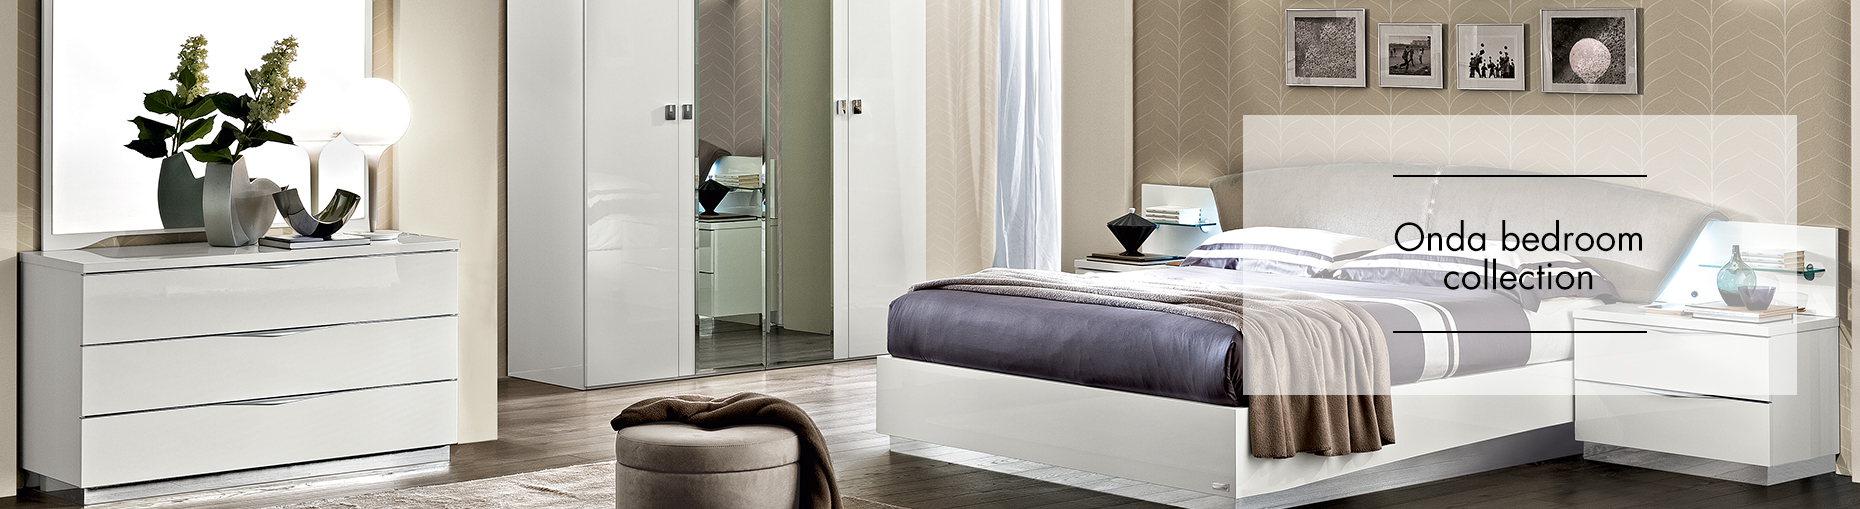 Onda bedroom Collection at Forrest Furnishing